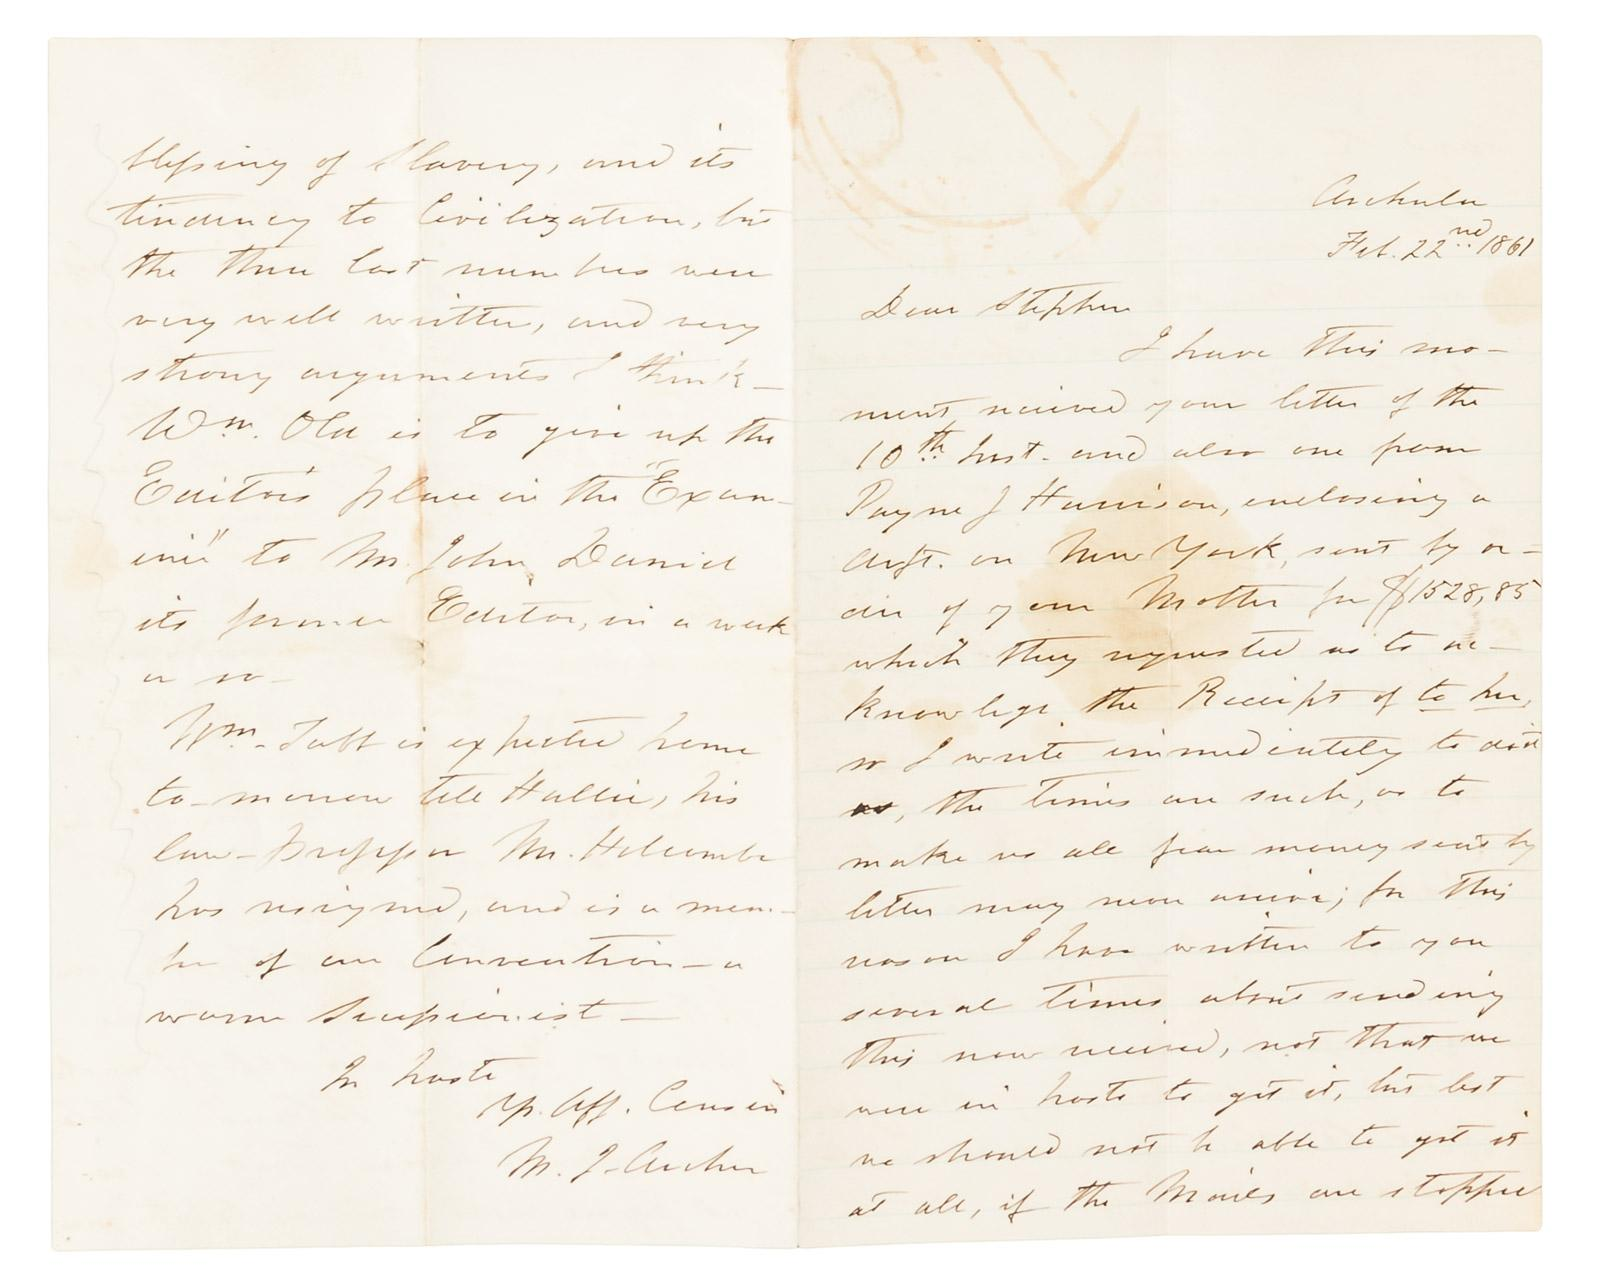 Letter Written By A Well Connected Virginian On The Eve Of Secession